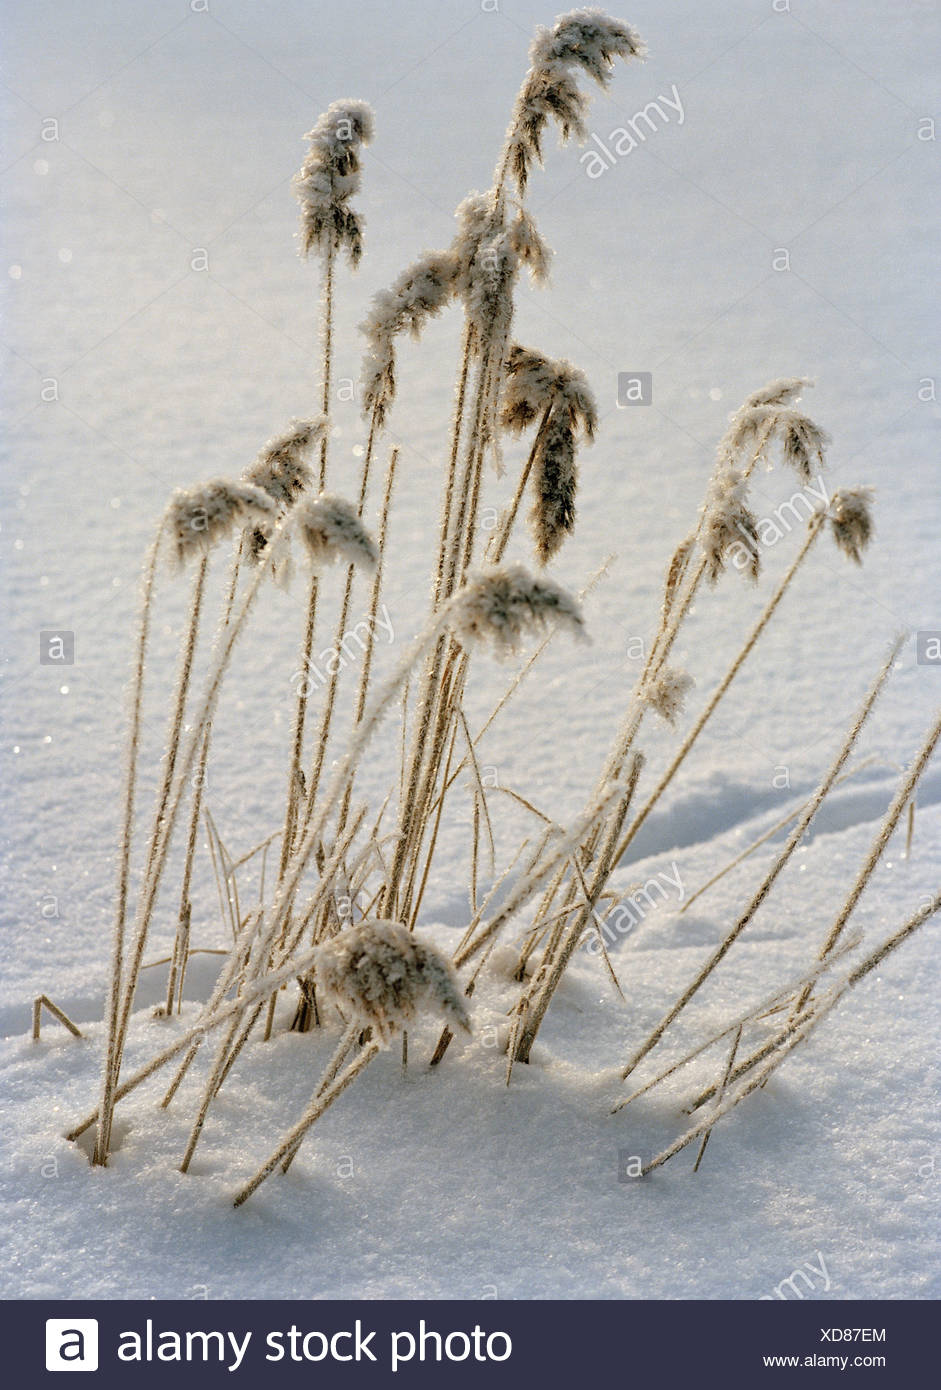 Reeds in the snow. - Stock Image